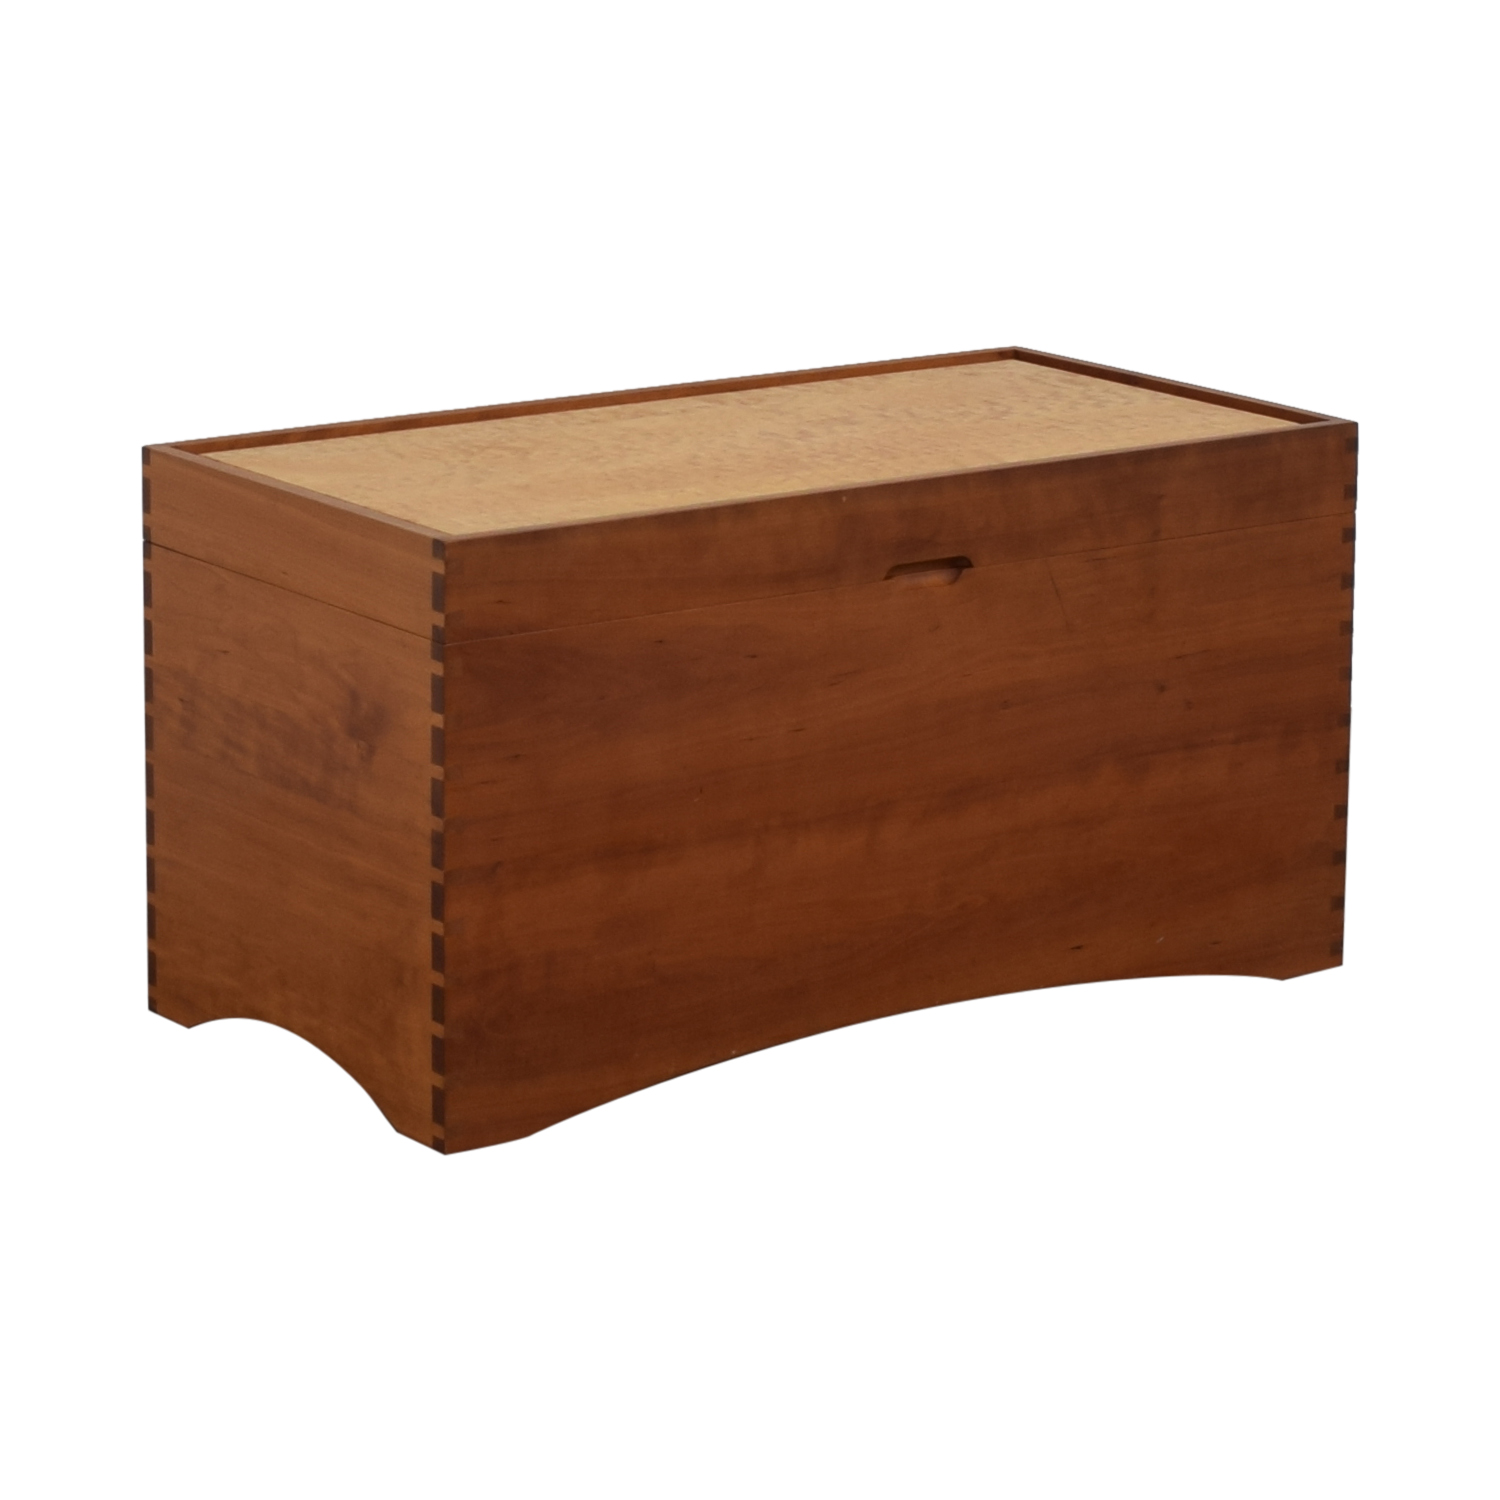 The Joinery The Joinery Custom Wood Hope Chest Trunk nj